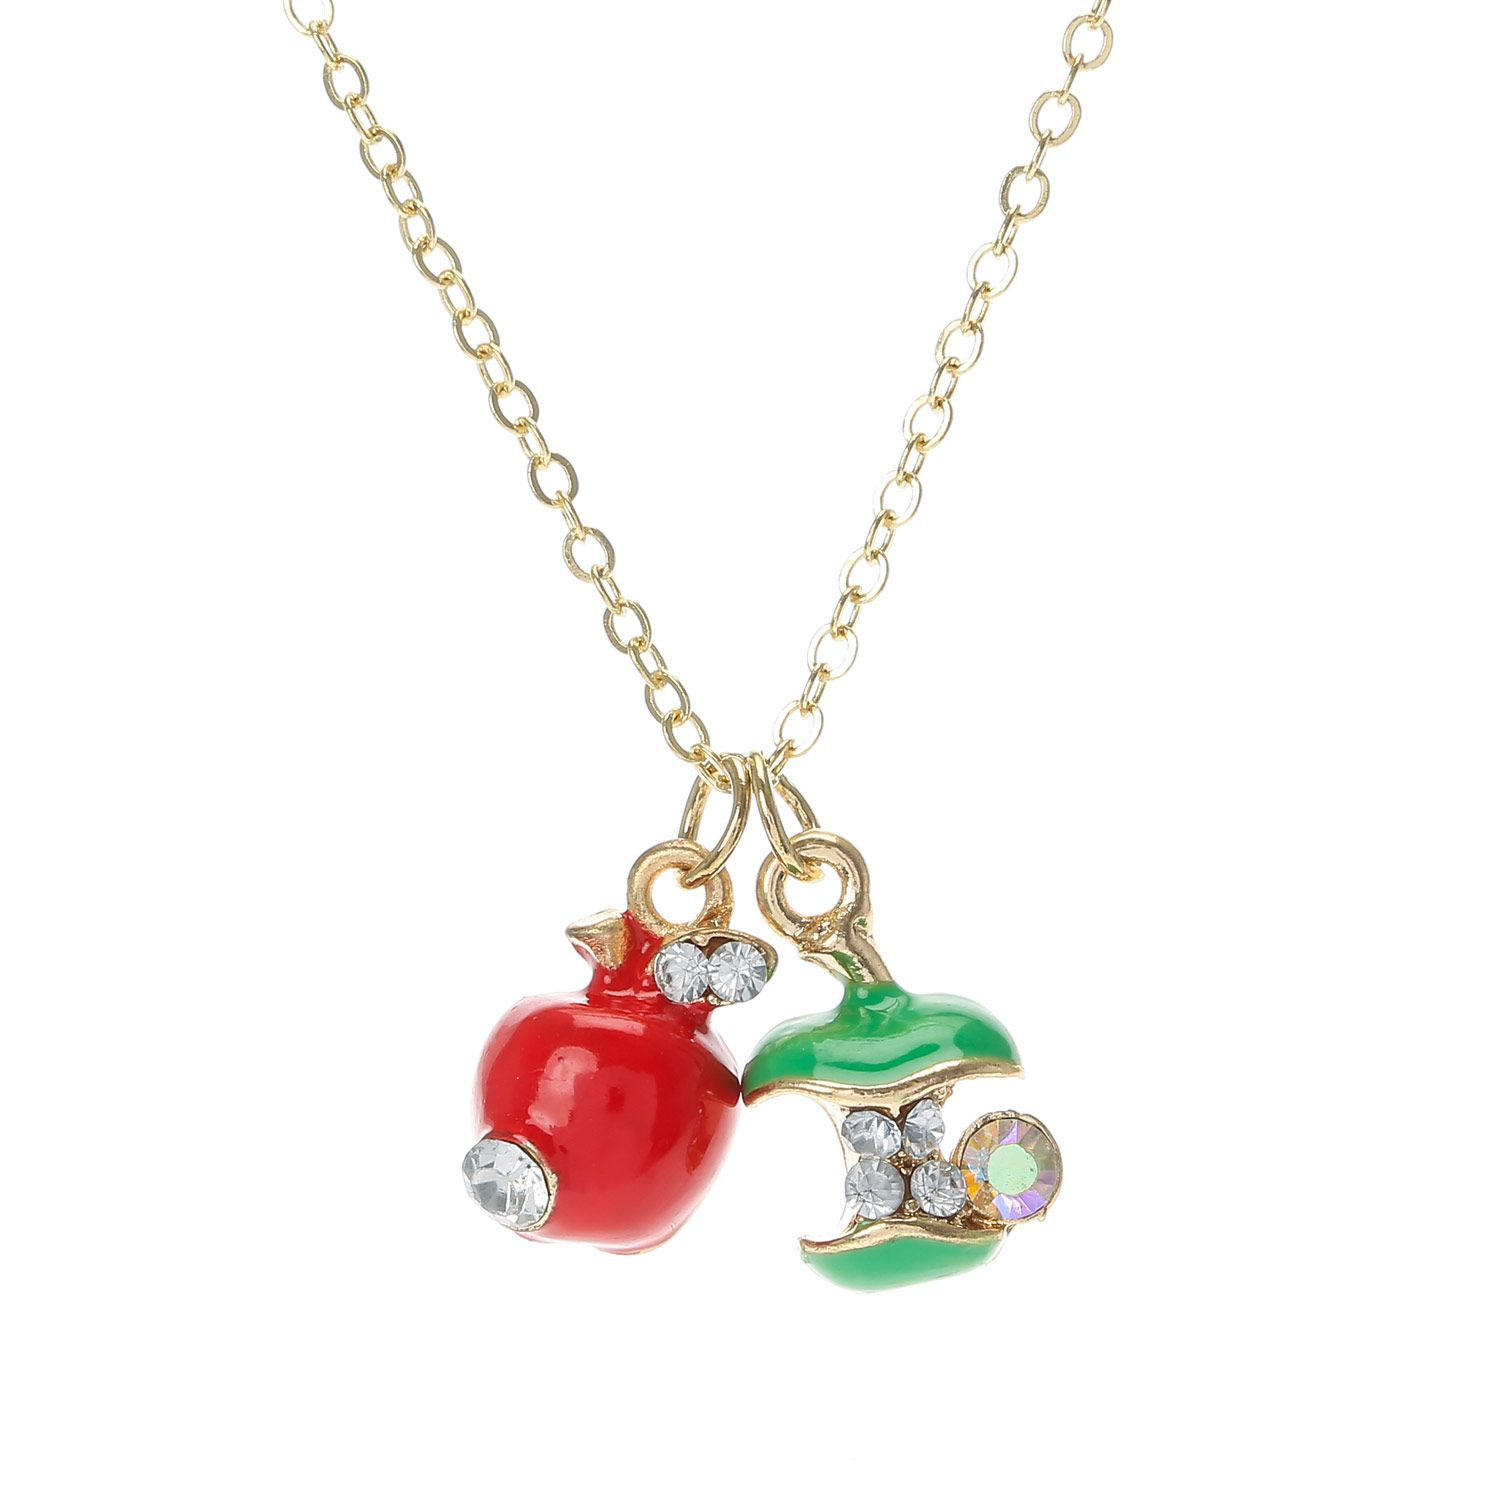 Crystal Apple Pendant Necklace